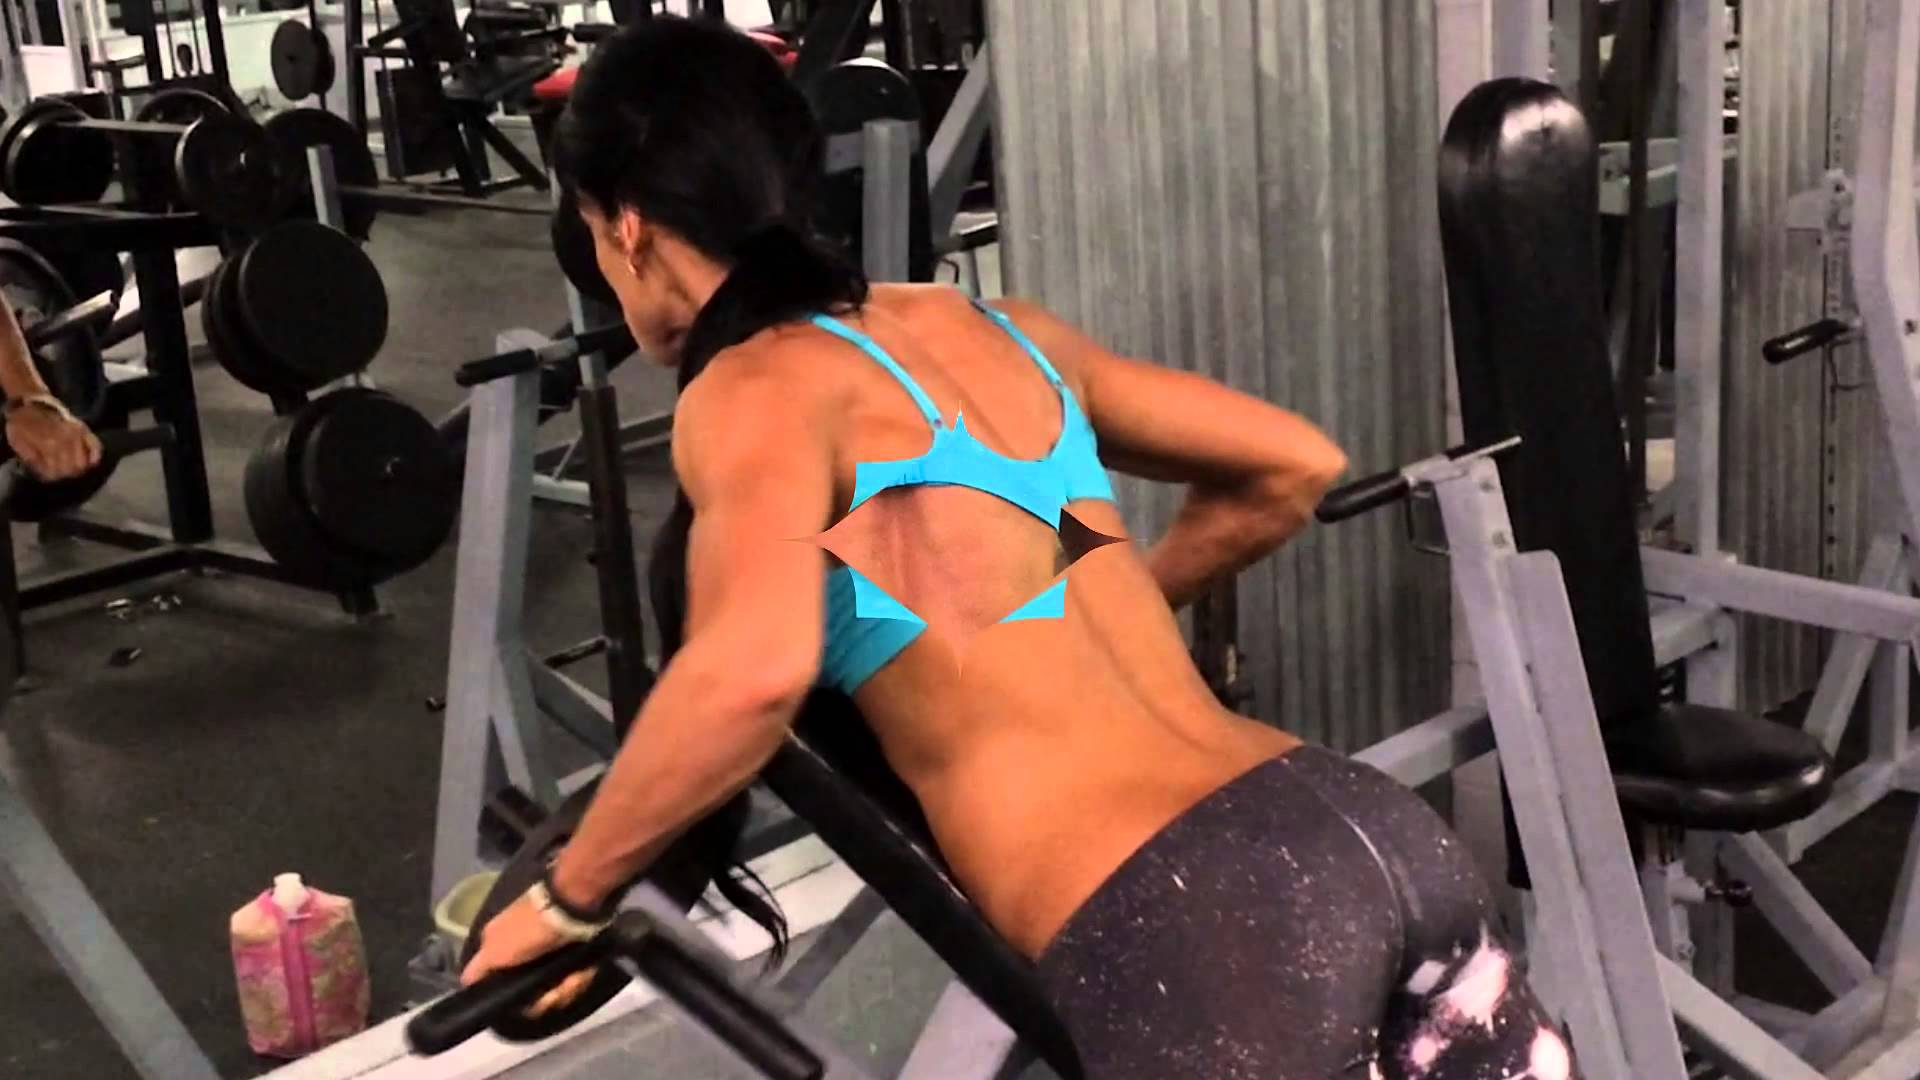 Sarah LeBlanc Workout